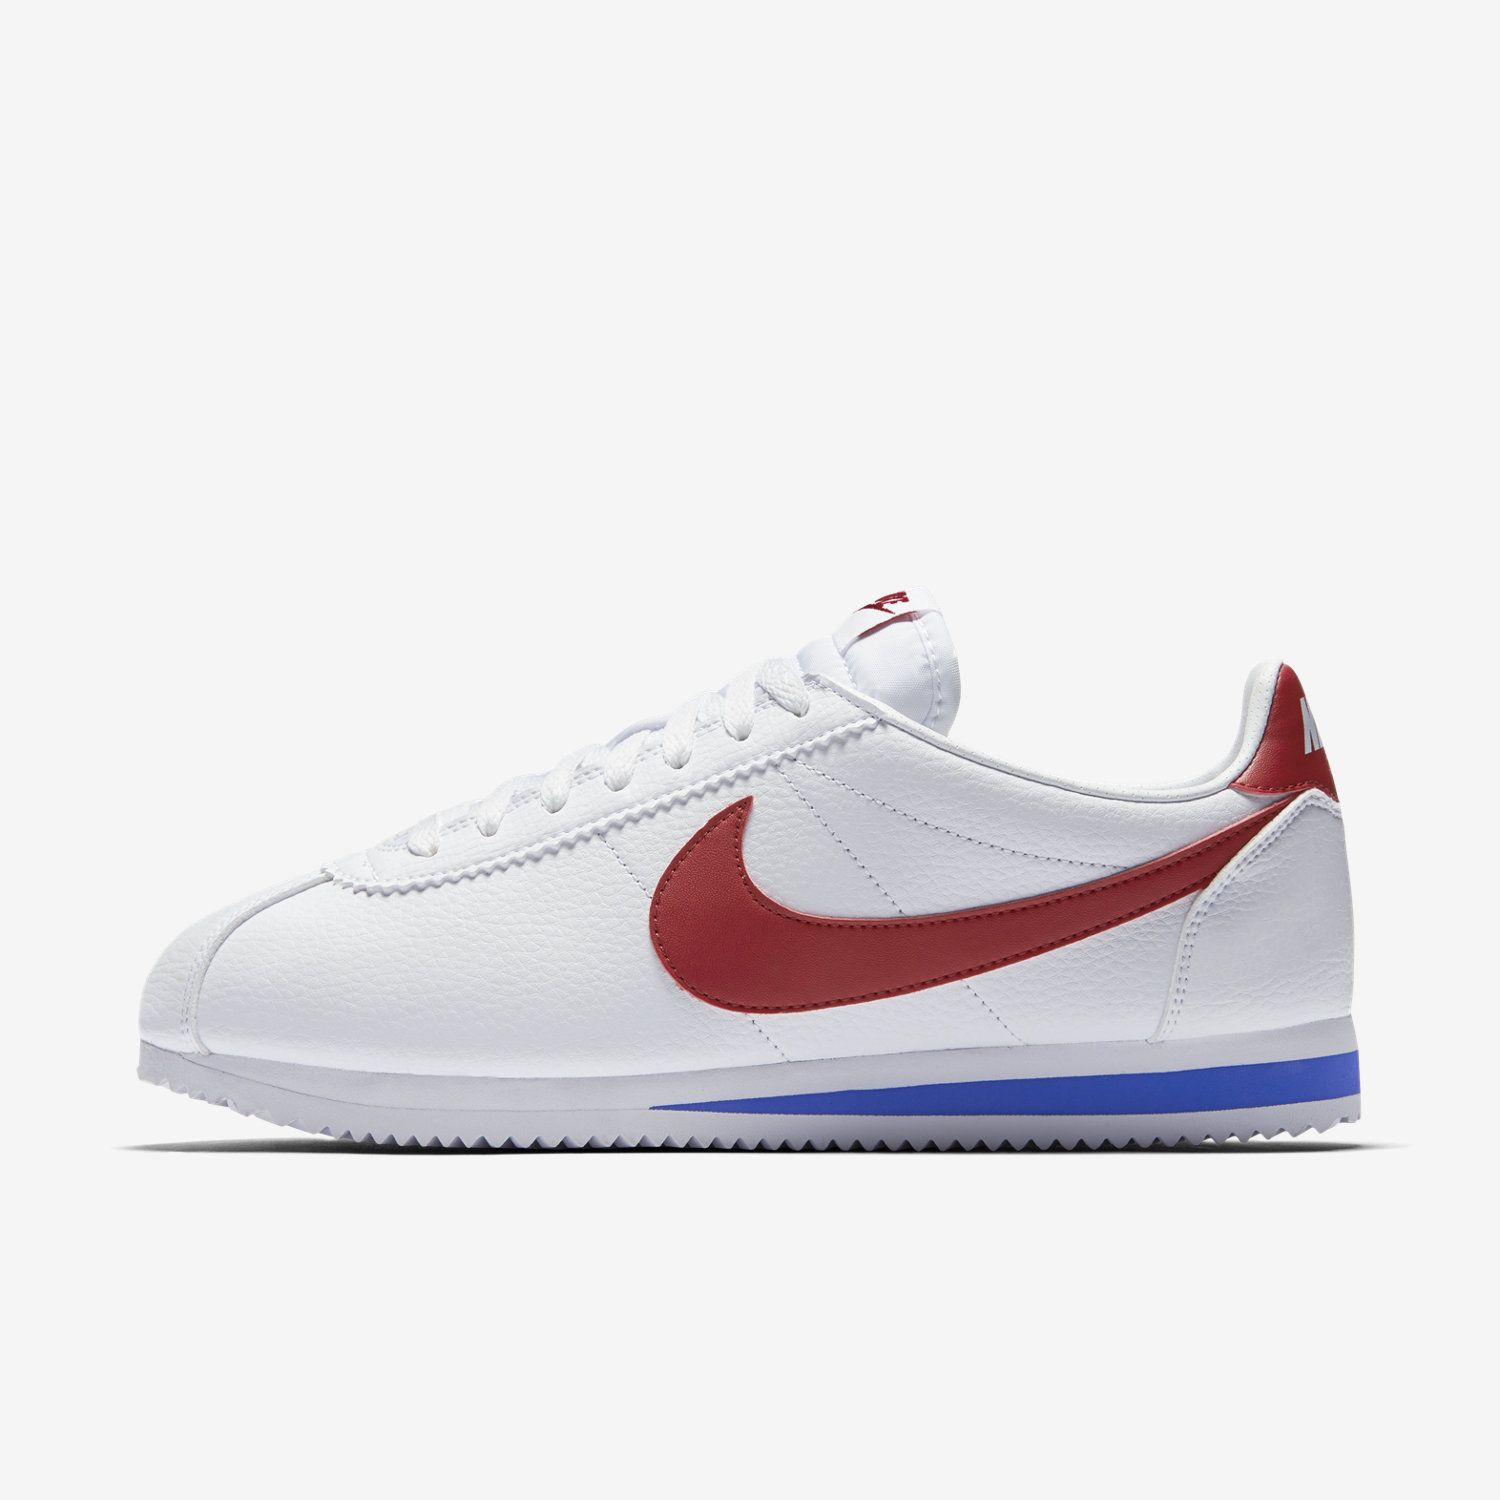 Femme Nike Internationalist Qs X Liberty Of London Trainers Rappel Bleublanchemangue Atomiquela Gomme Brun Moyen 654938 400 P 540 in addition Golds Gym 310 further Nike Air Max 1 Pinnacle Pack likewise 7061 together with Black Low Trainers Yeezy 3421162. on premium trainers